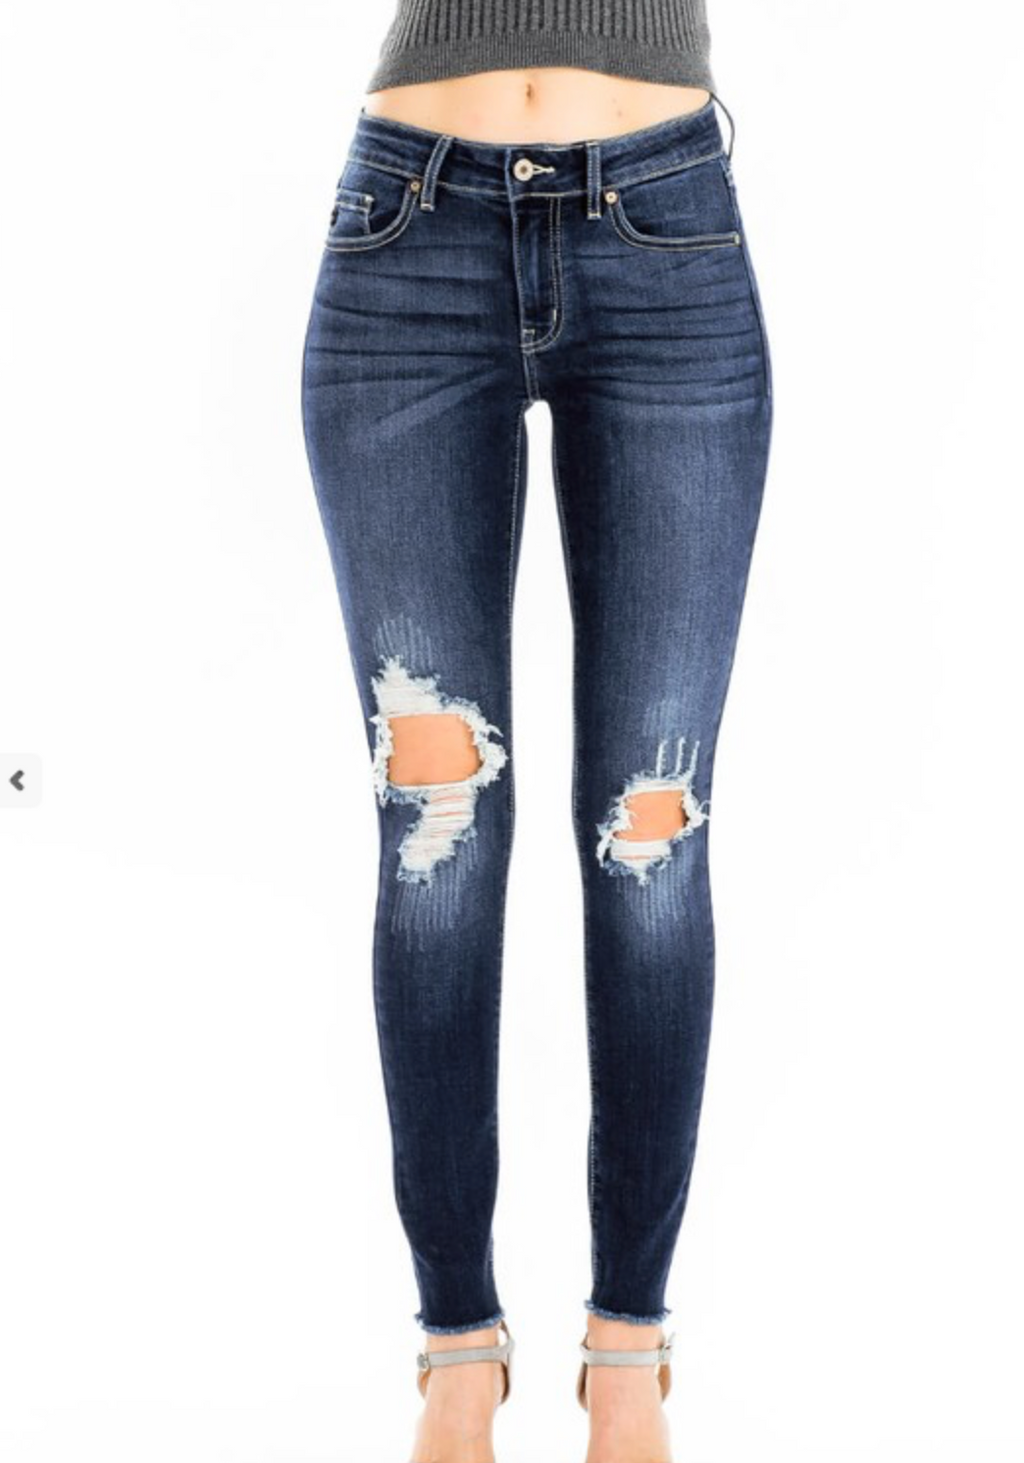 Not Your Mama's Jeans in Dark Wash